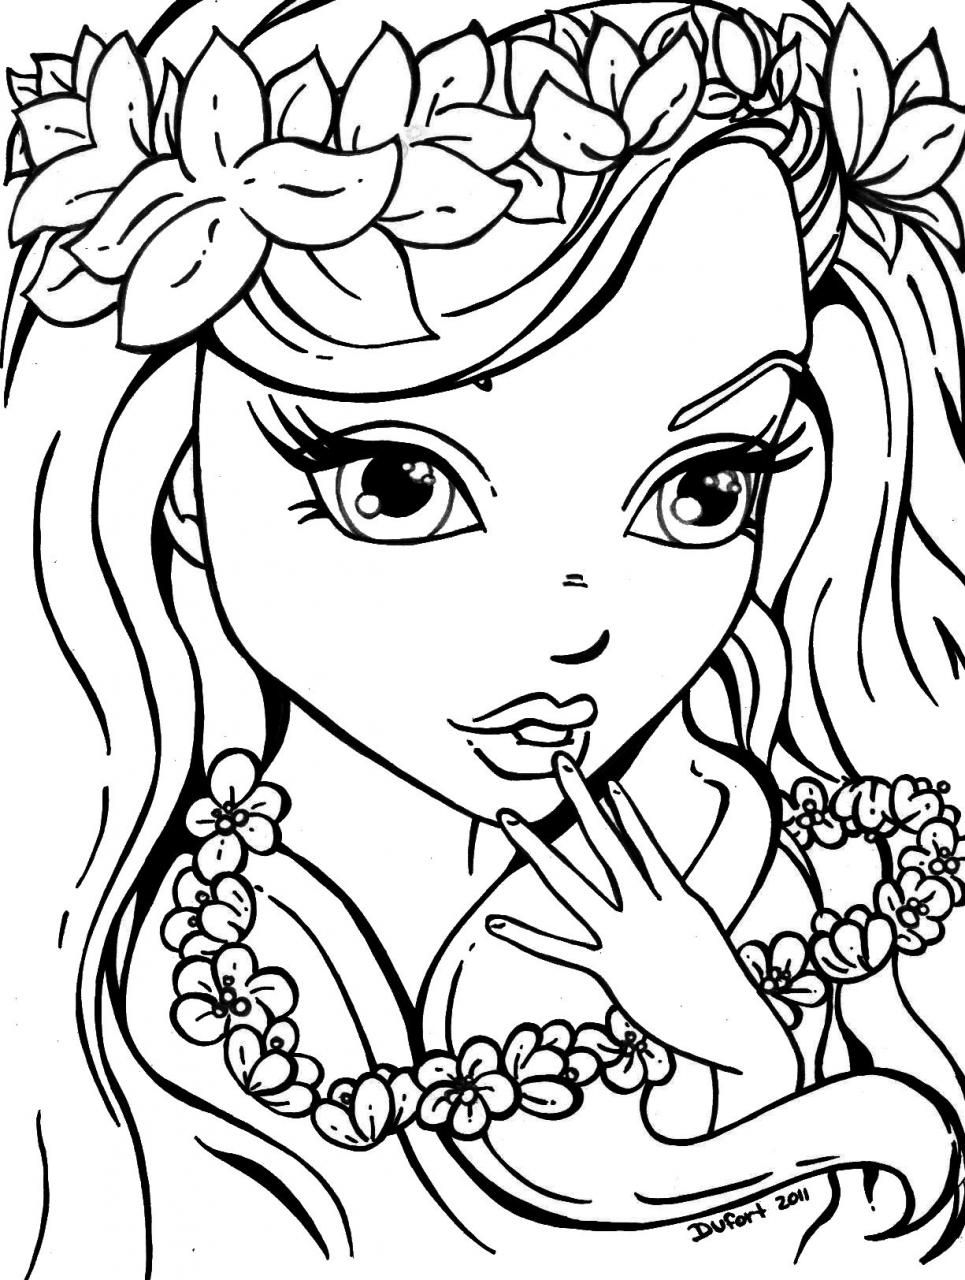 Coloring Pages For Girls To Print Out Jpg 965 1280 Mermaid Coloring Pages Cool Coloring Pages Cute Coloring Pages